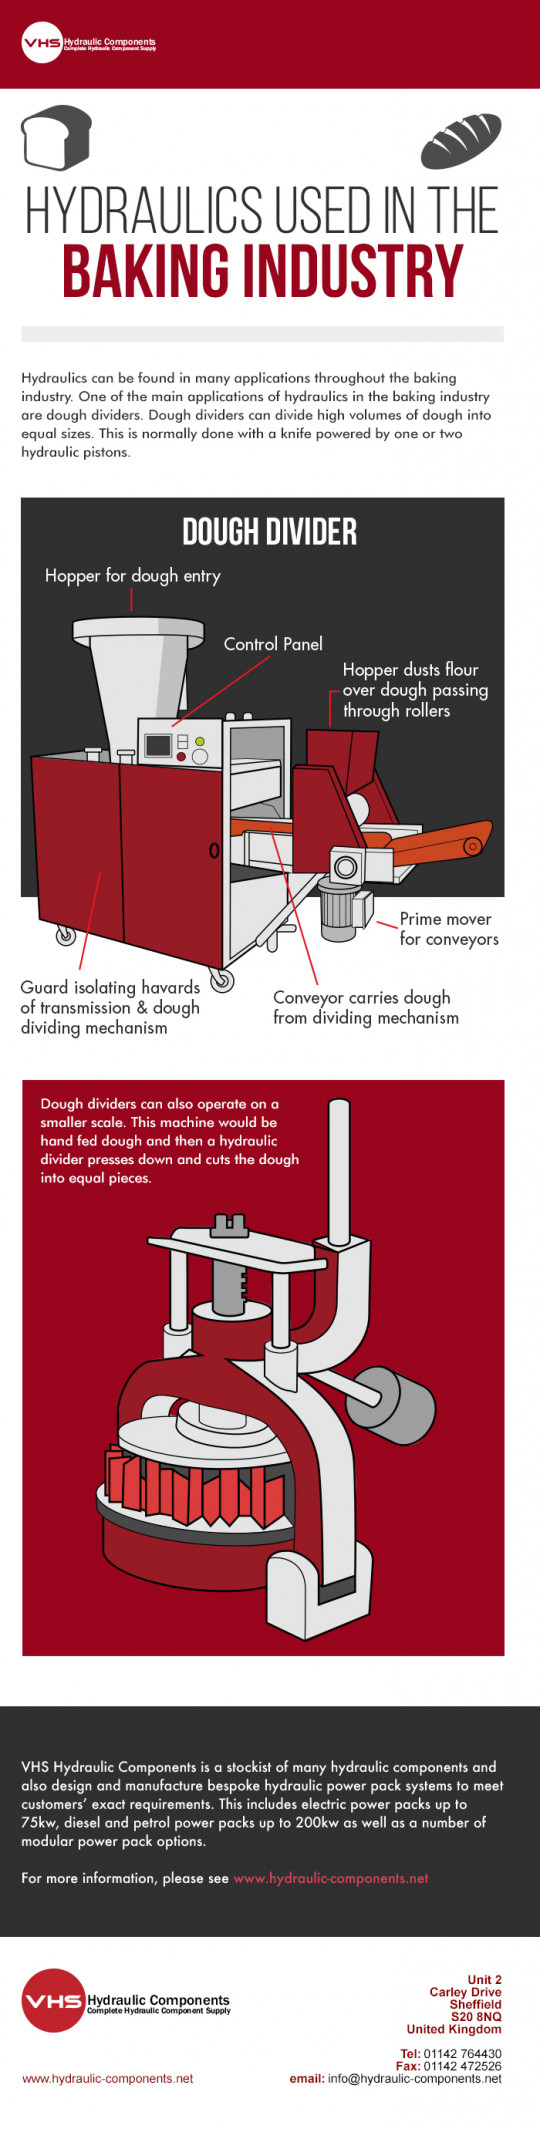 Hydraulics Used in the Baking Industry